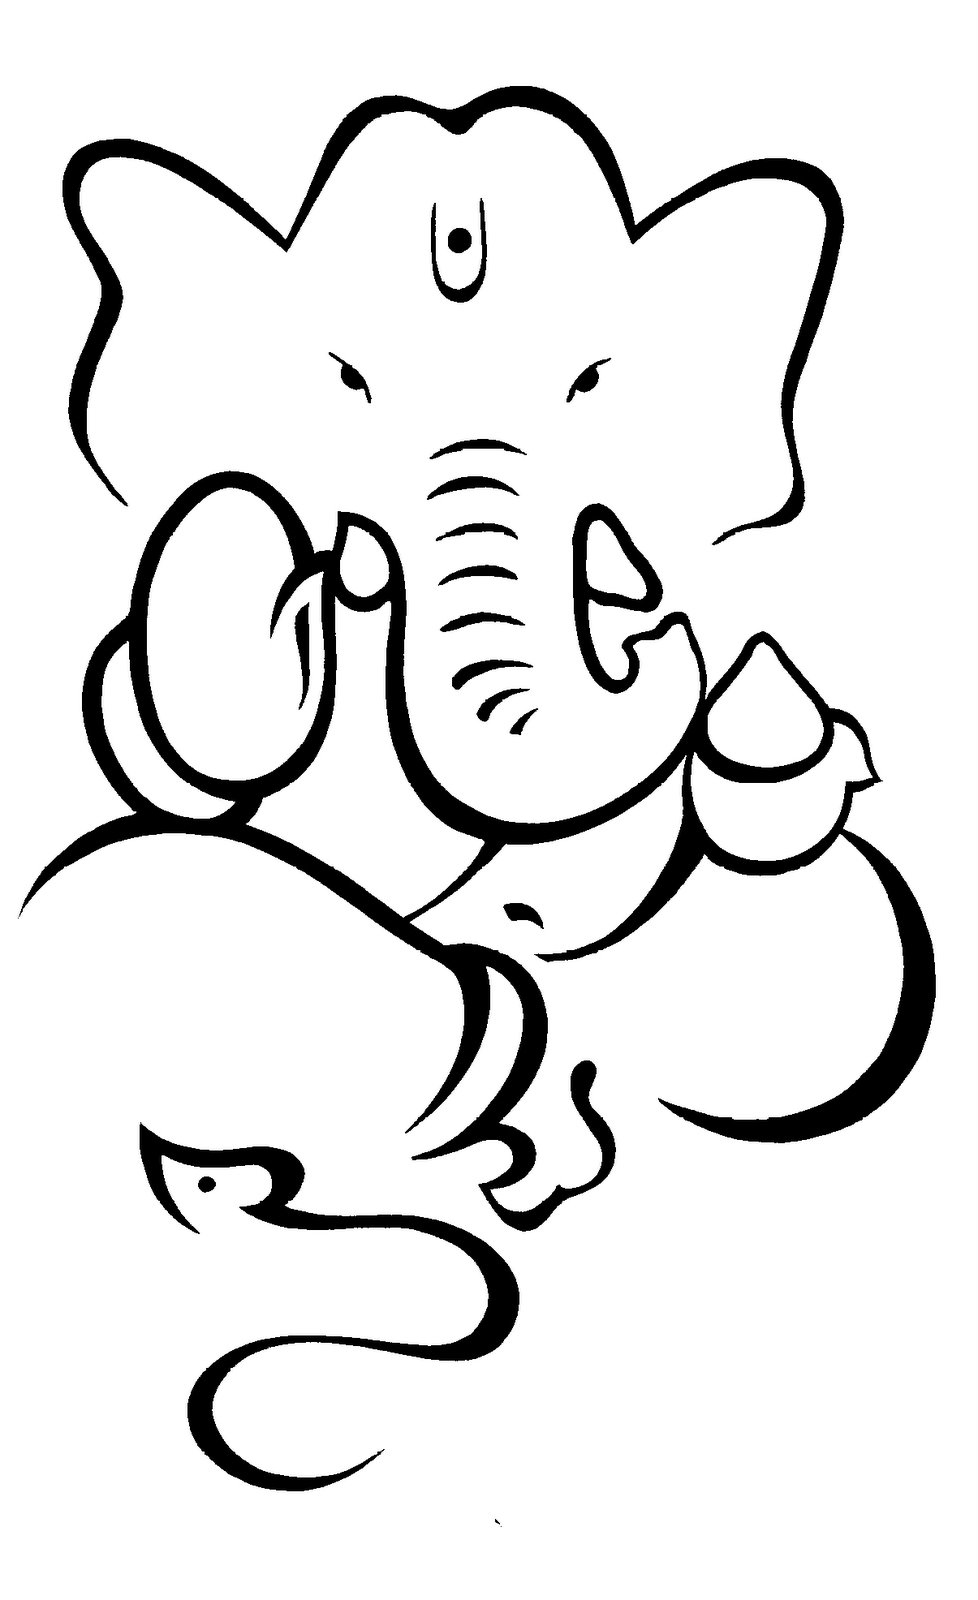 Ganesh Line Drawing : Line art ganesha clipart best